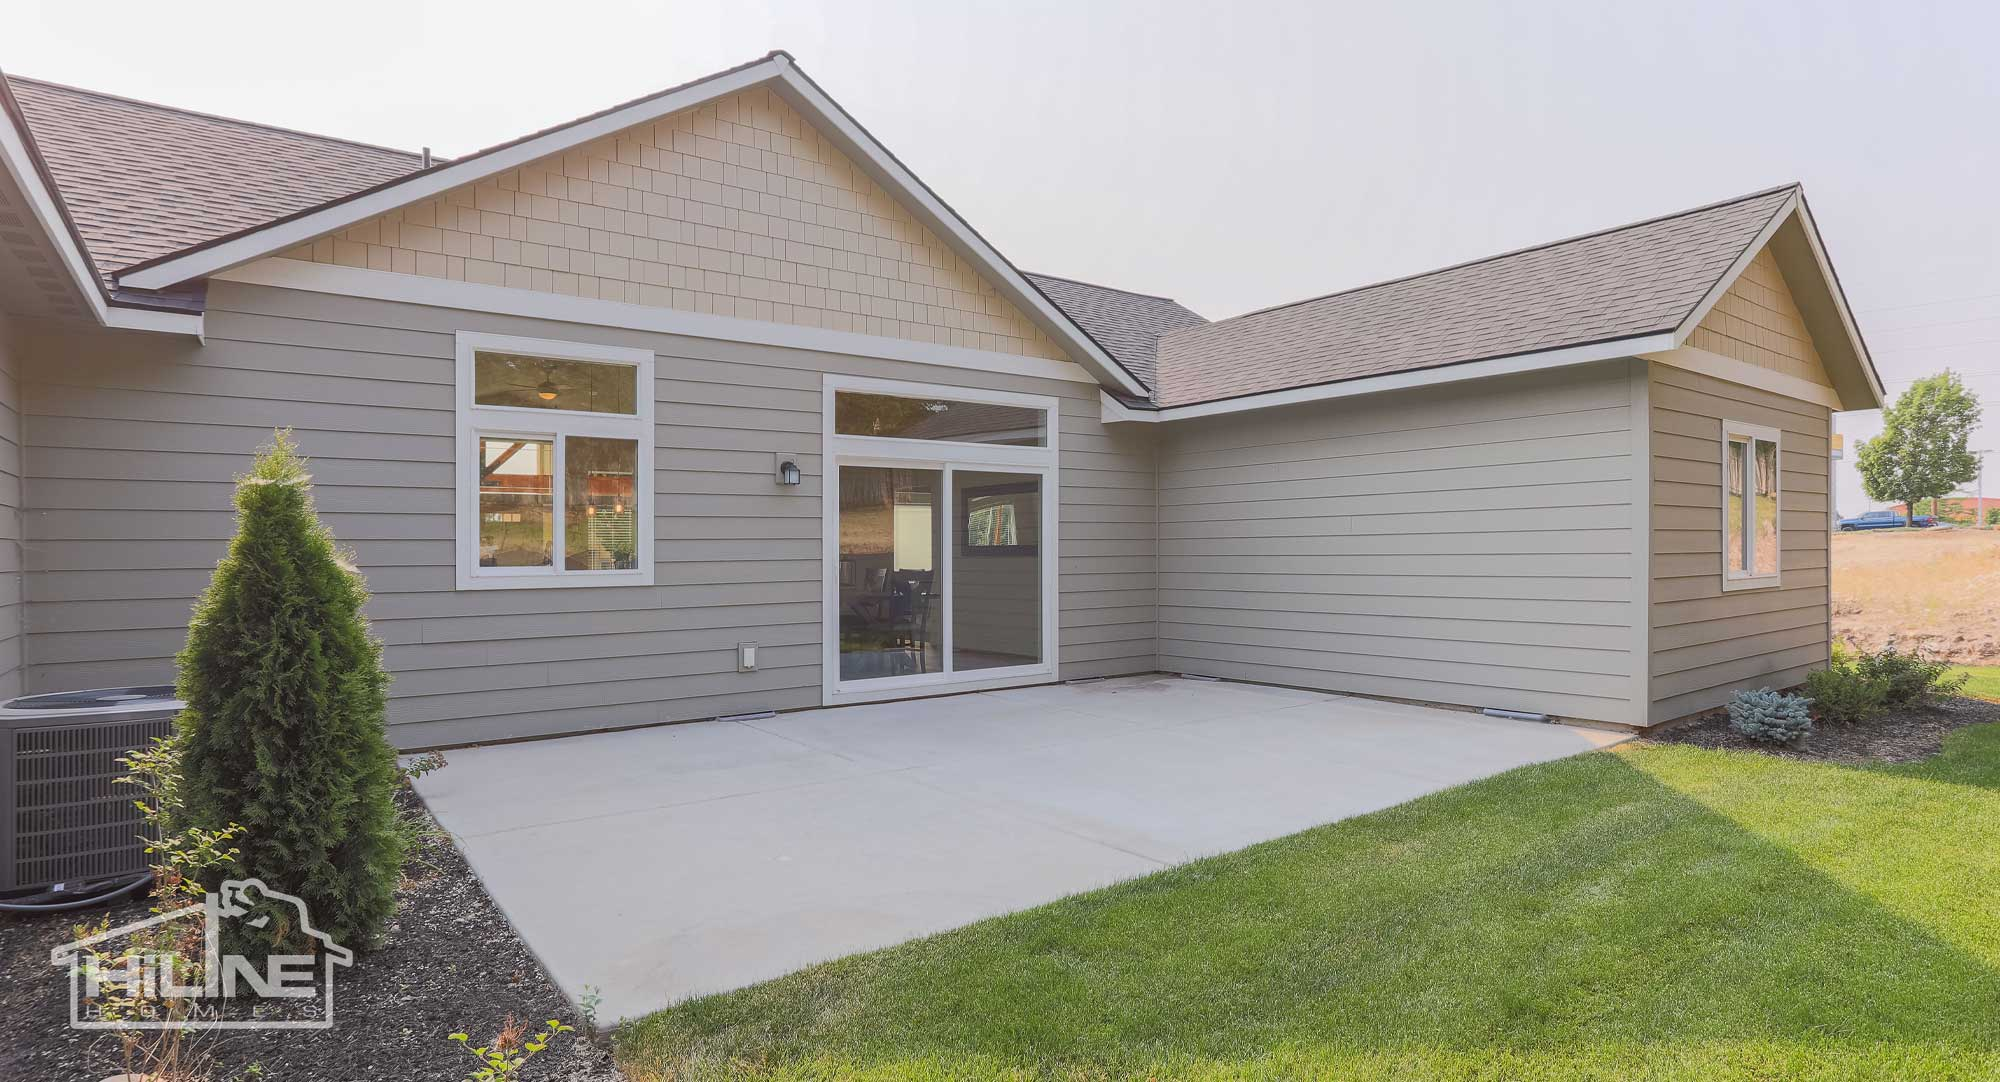 Image of HiLine Homes of Meridian Rear Exterior